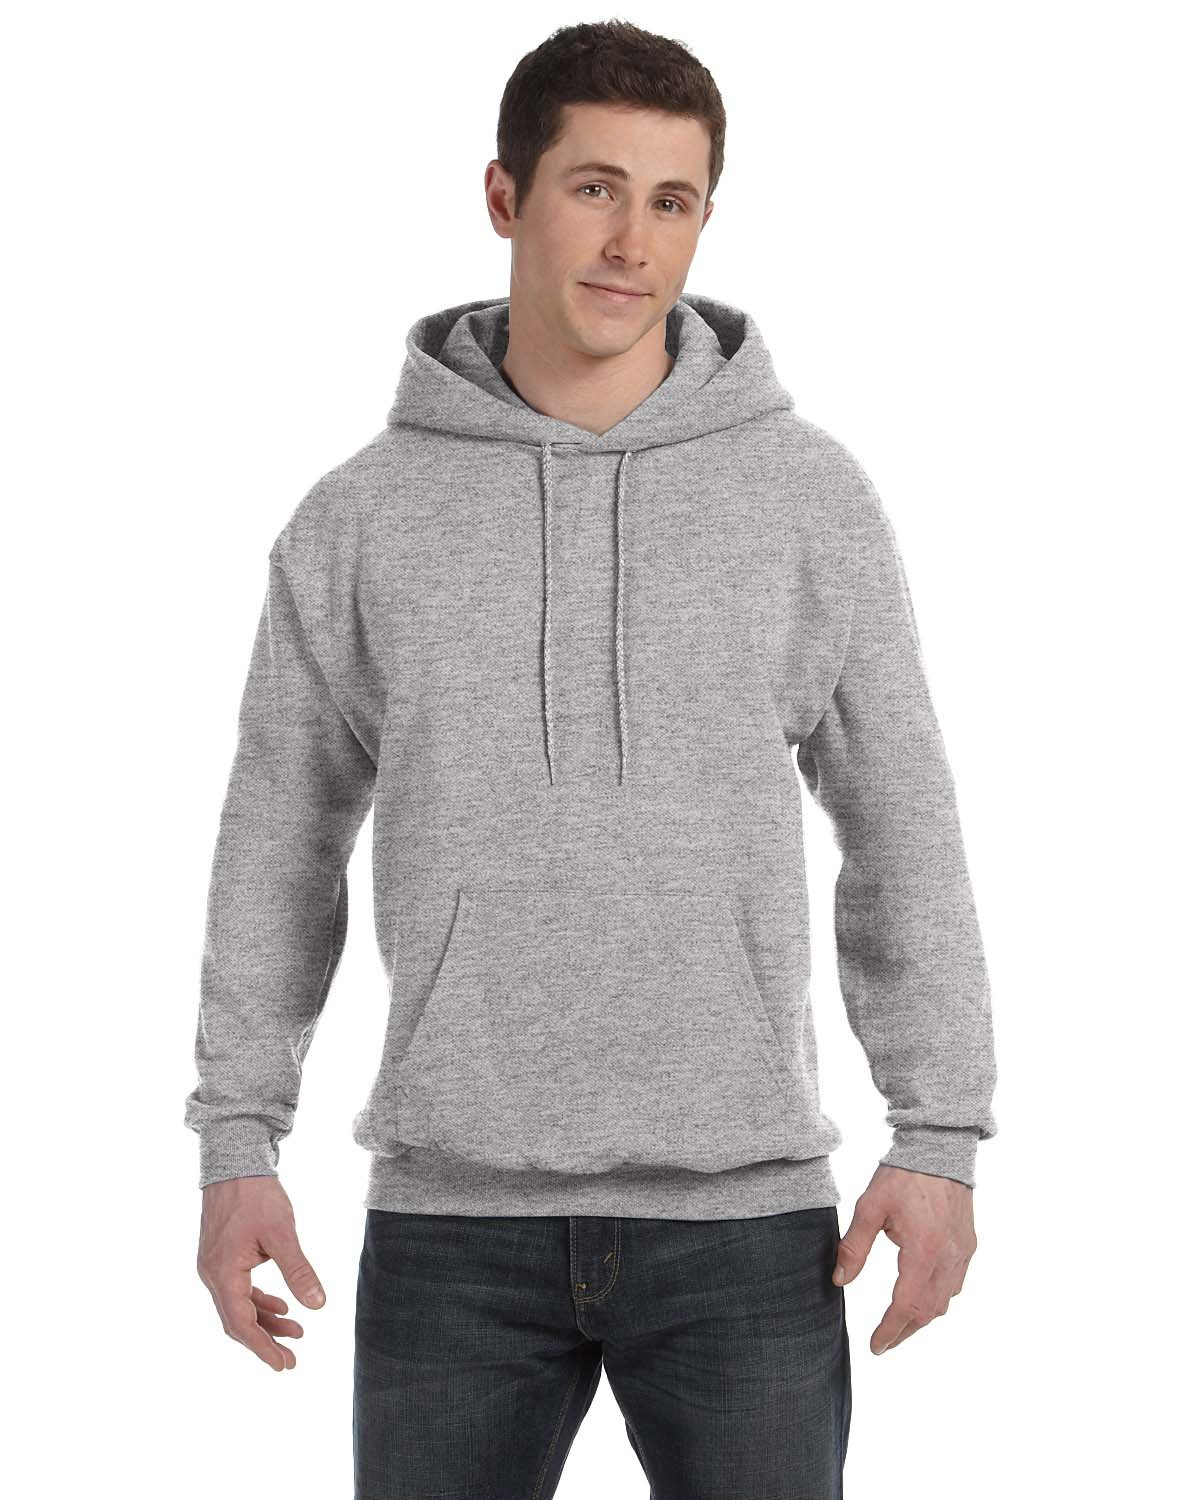 Hanes Unisex Ecosmart® 50/50 Pullover Hooded Sweatshirt LIGHT STEEL